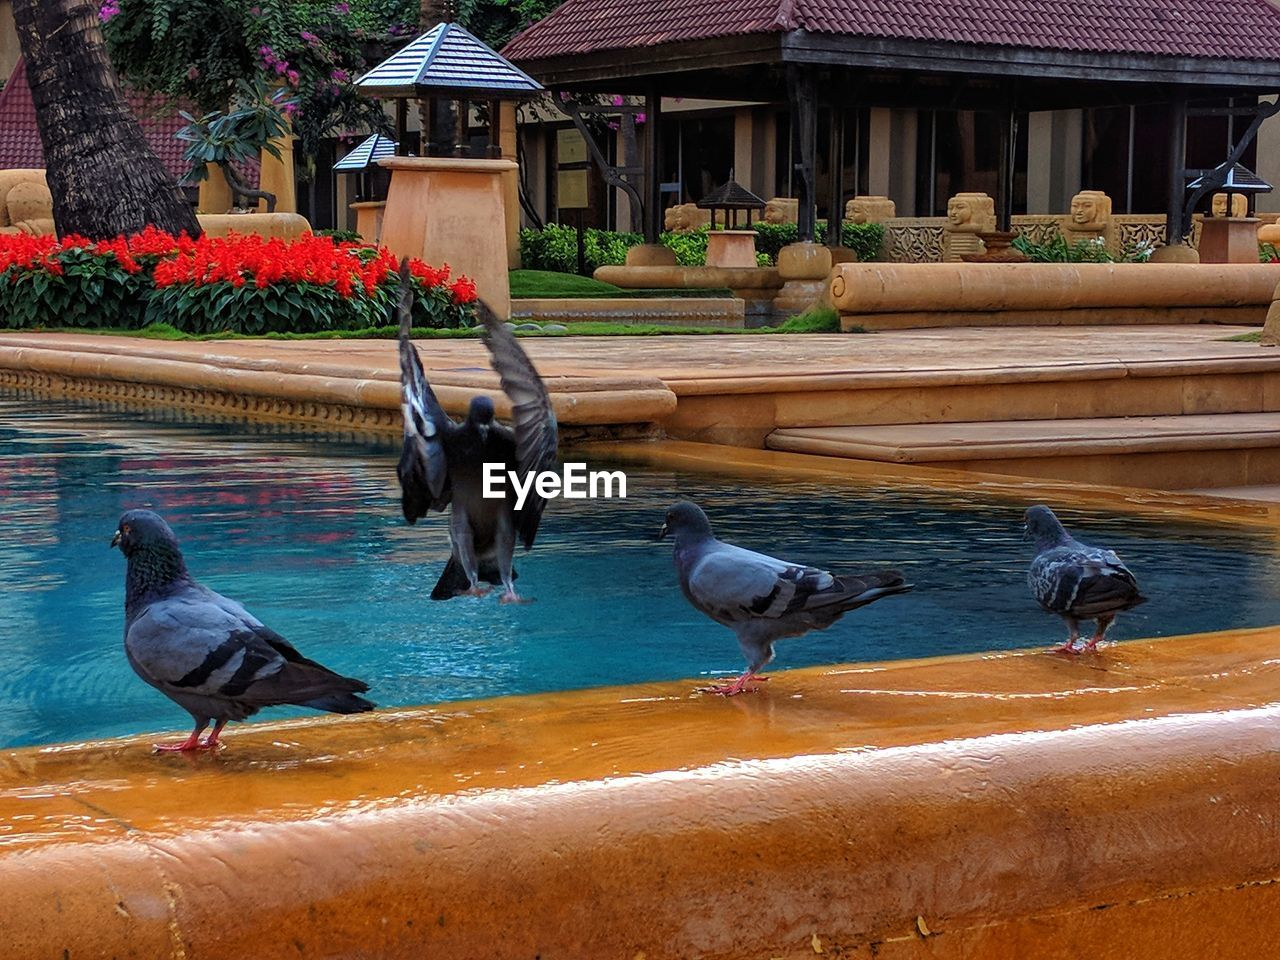 animal themes, bird, animals in the wild, animal wildlife, outdoors, water, nature, no people, day, architecture